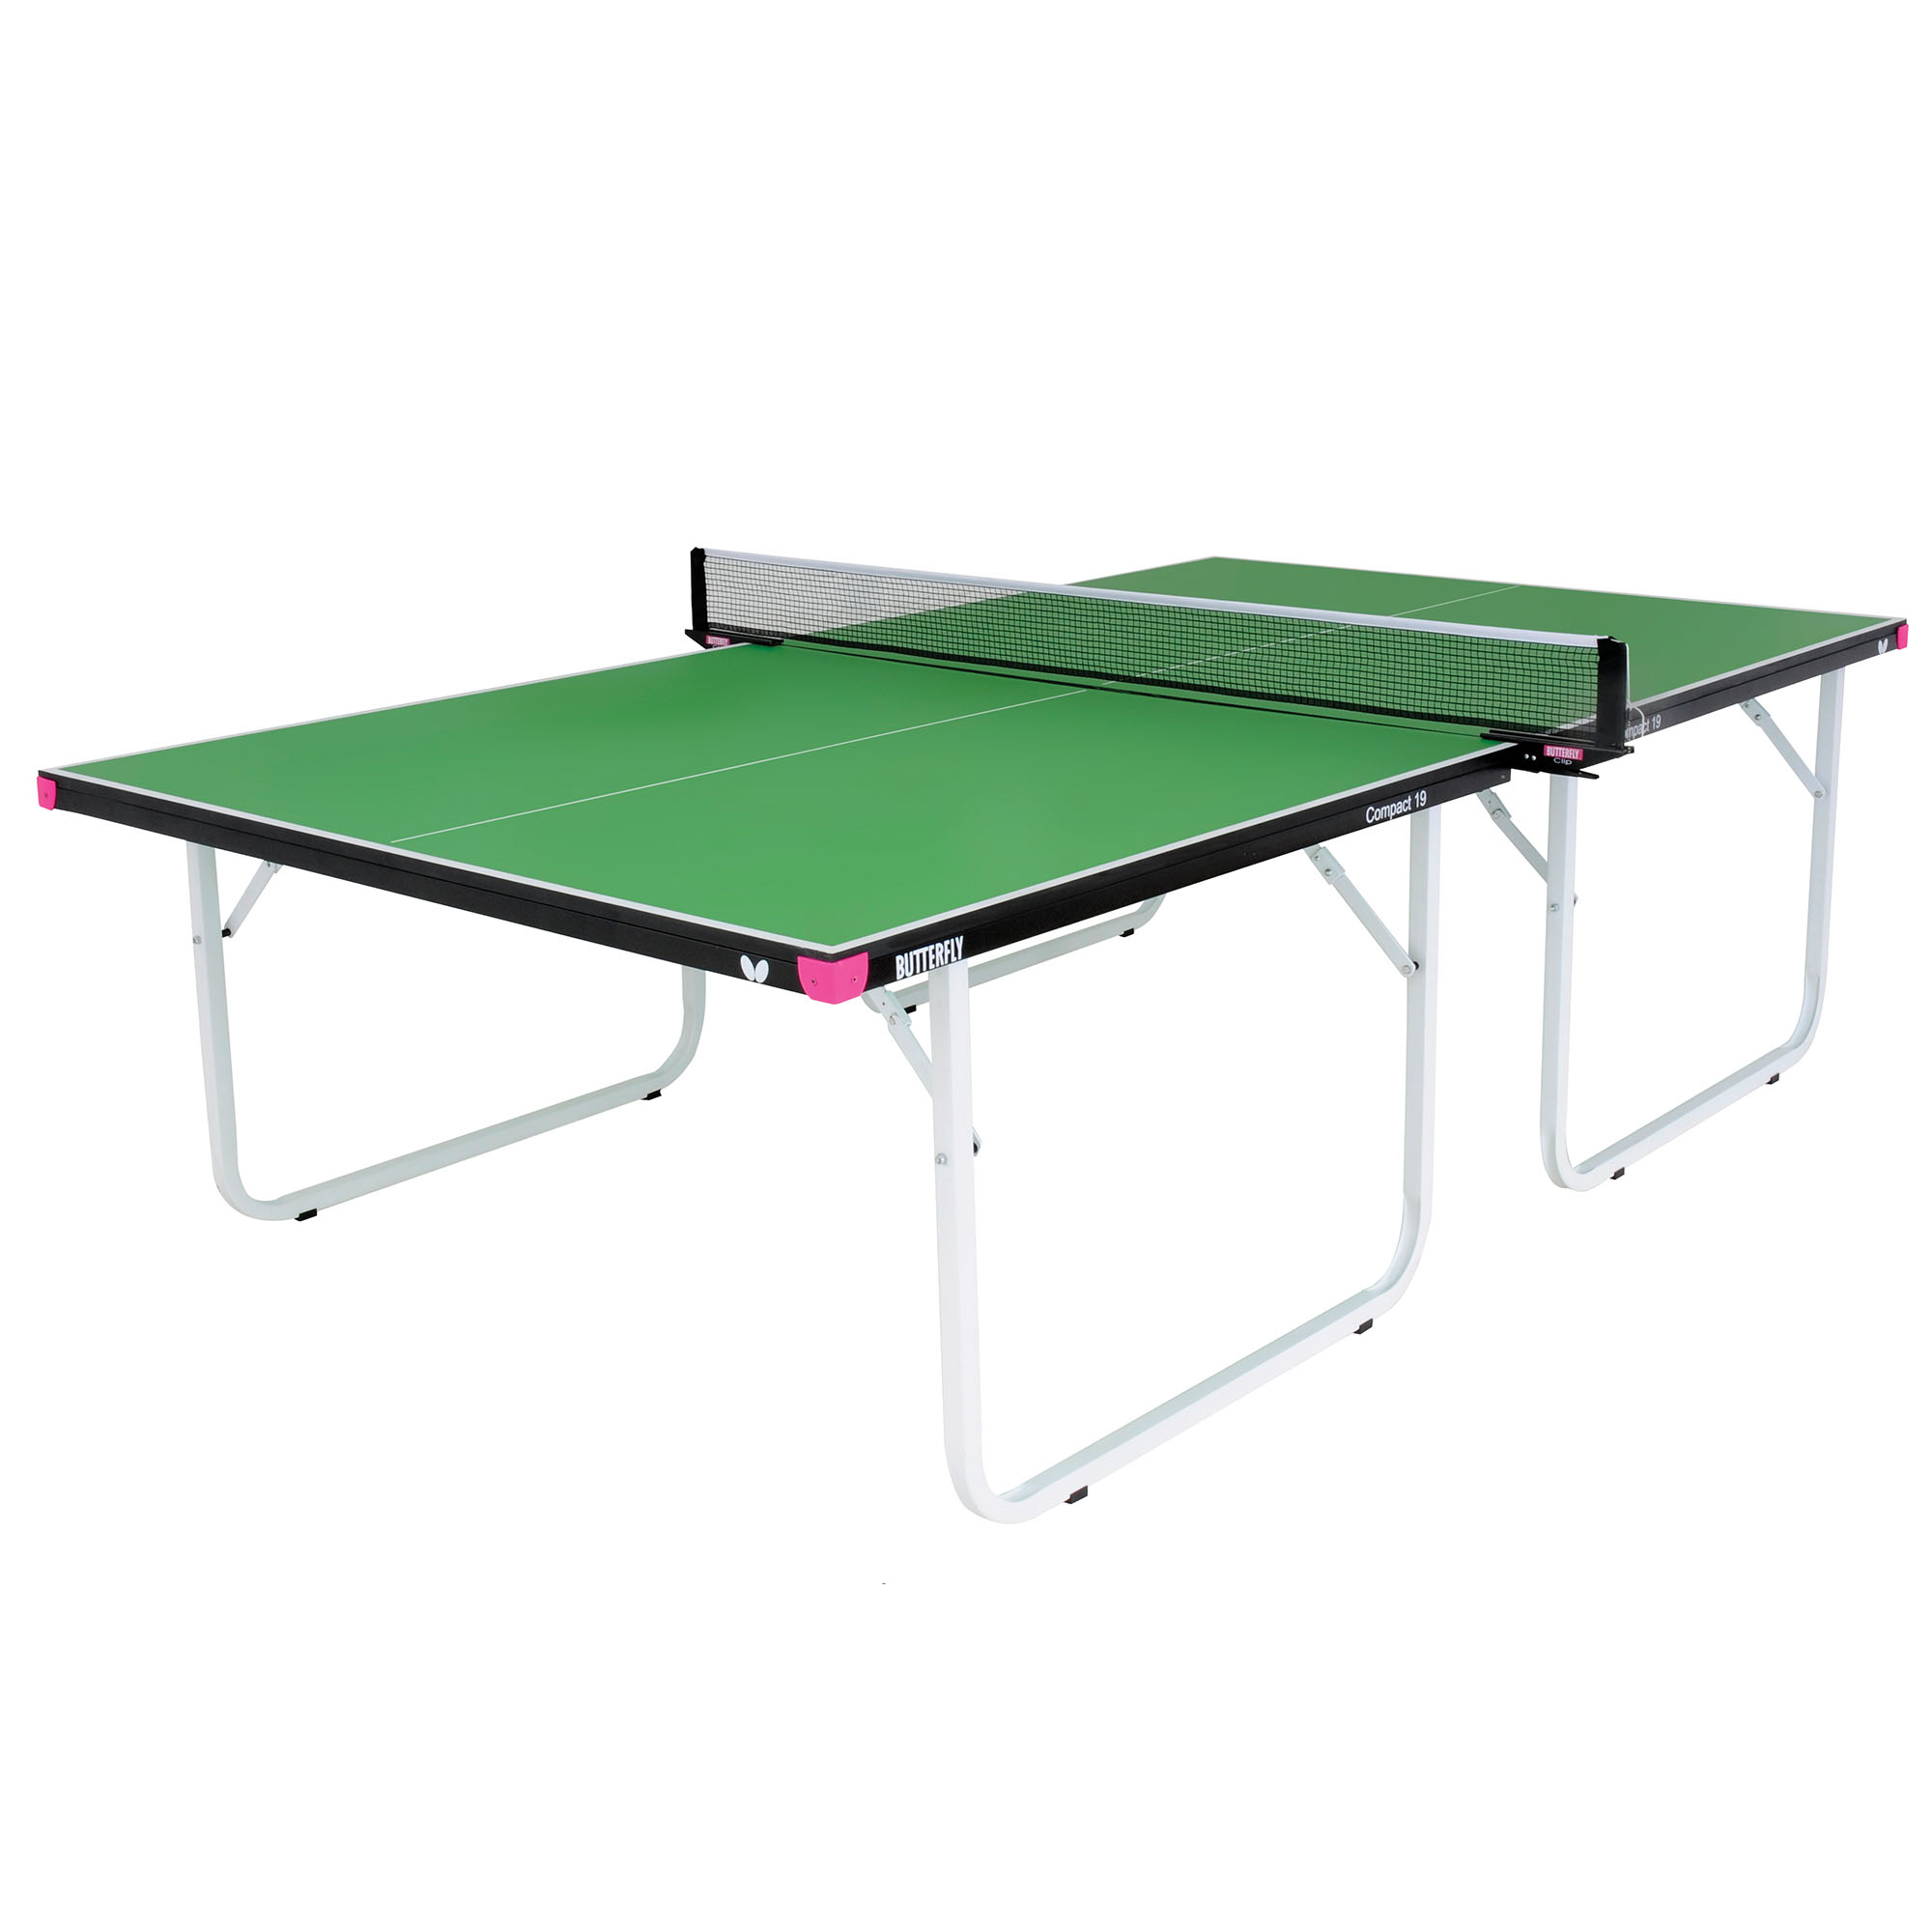 Butterfly Compact 19 Indoor Table Tennis Table  Green